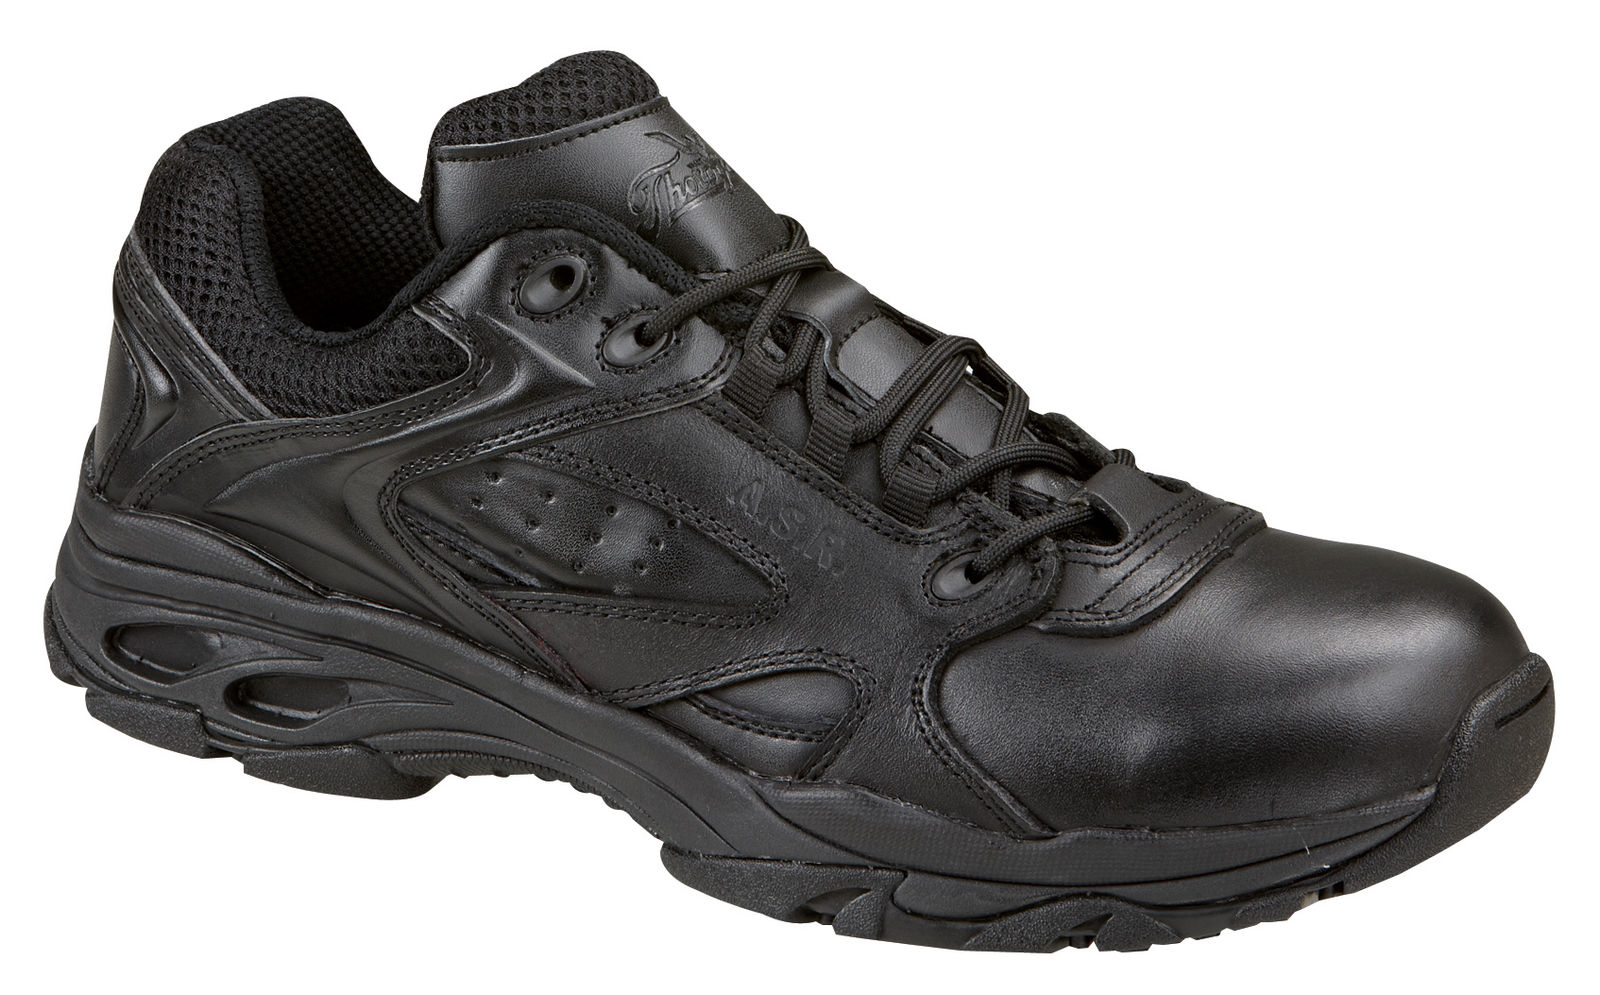 Thorogood  - Men's - Composite Toe Oxford - Black-Thorogood Shoes